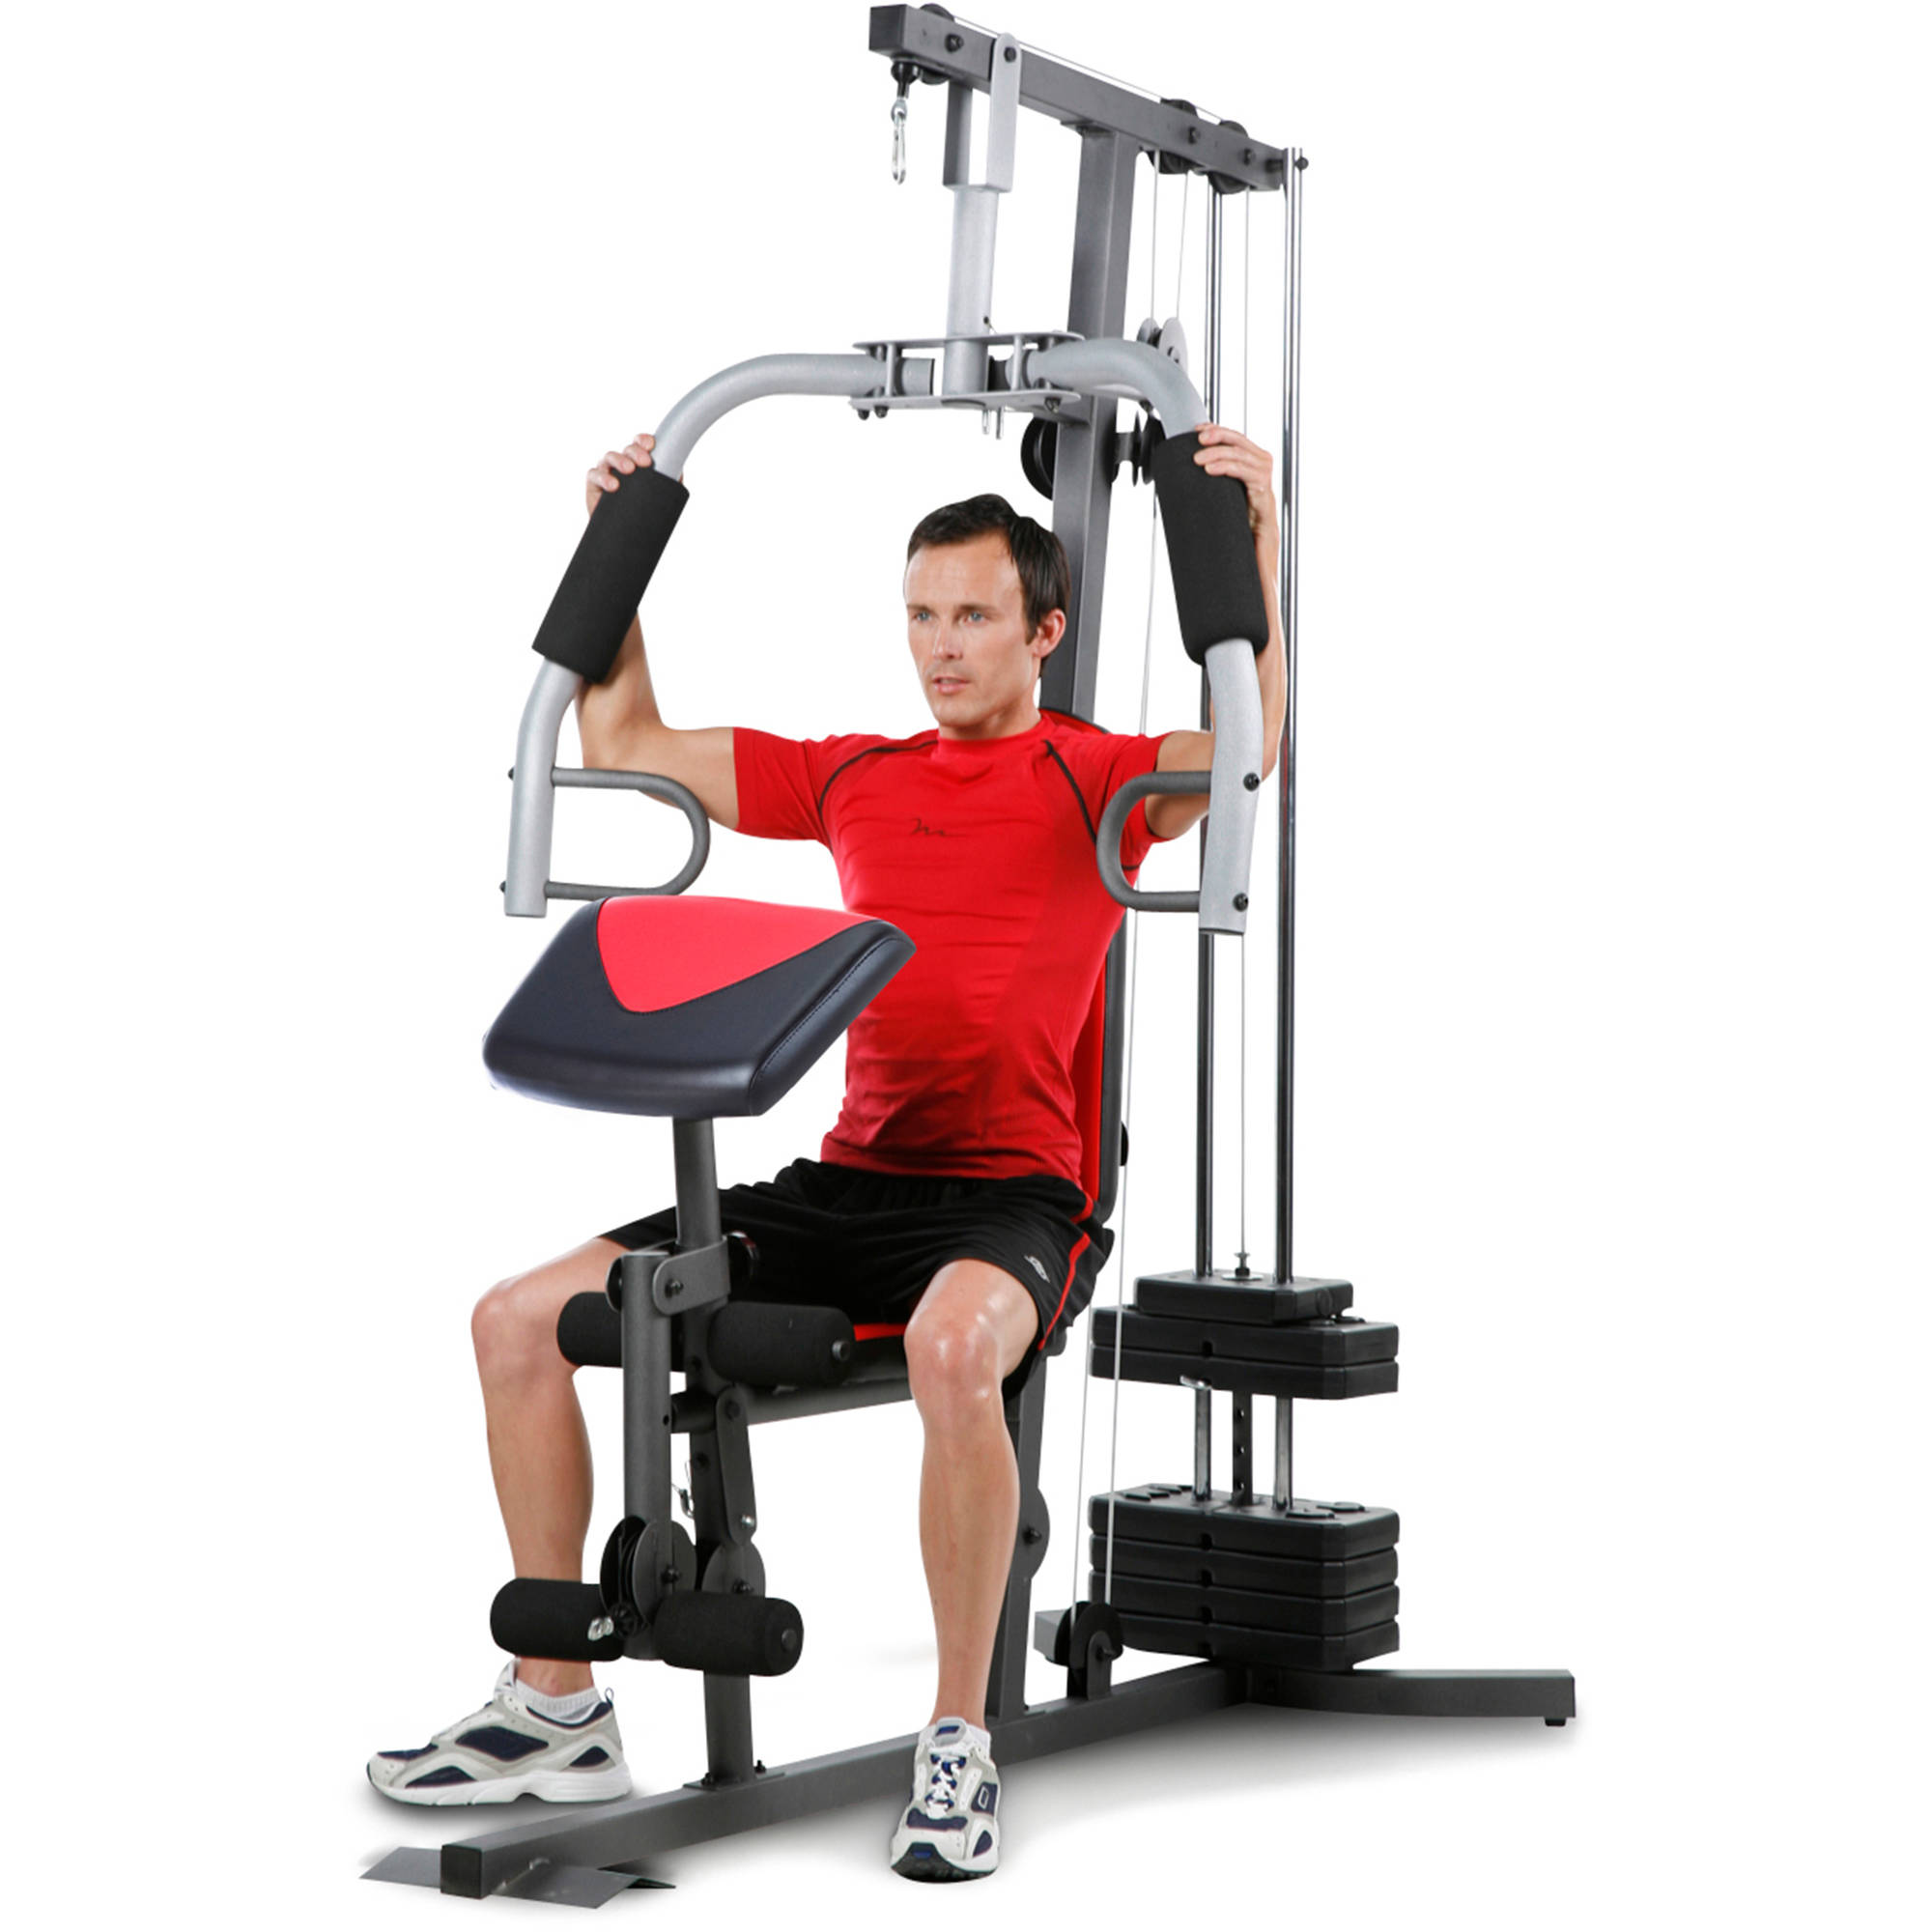 Weider Home Gym Workout Routine Most Popular Workout